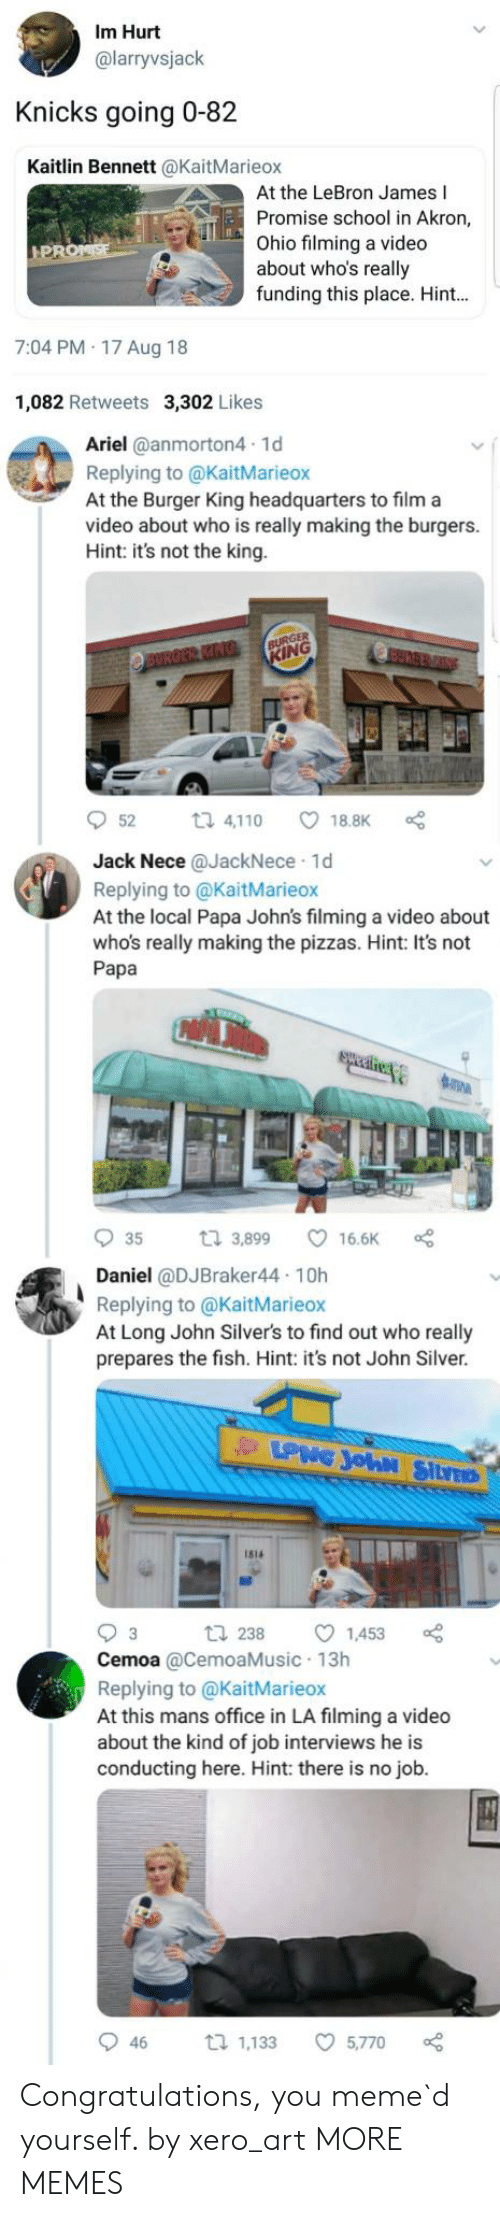 Localism: Im Hurt  @larryvsjack  Knicks going 0-82  Kaitlin Bennett @KaitMarieox  At the LeBron James I  Promise school in Akron,  ohio filming a video  about who's really  funding this place. Hint  7:04 PM 17 Aug 18  1,082 Retweets 3,302 Likes  Ariel @anmorton4 1d  Replying to @KaitMarieox  At the Burger King headquarters to film a  video about who is really making the burgers.  Hint: it's not the king.  ING  52  ロ4,1 10  ㅇ18.BK。  Jack Nece @JackNece 1d  Replying to @KaitMarieox  At the local Papa John's filming a video about  who's really making the pizzas. Hint: It's not  Papa  935 3,899 ㅇ 166K oe  Daniel @DJBraker44 10h  Replying to @KaitMarieox  At Long John Silver's to find out who really  prepares the fish. Hint: it's not John Silver  1s14  2381453  Cemoa @CemoaMusic 13h  Replying to @KaitMarieox  At this mans office in LA filming a video  about the kind of job interviews he is  conducting here. Hint: there is no job.  46 1,133 5,770 Congratulations, you meme`d yourself. by xero_art MORE MEMES